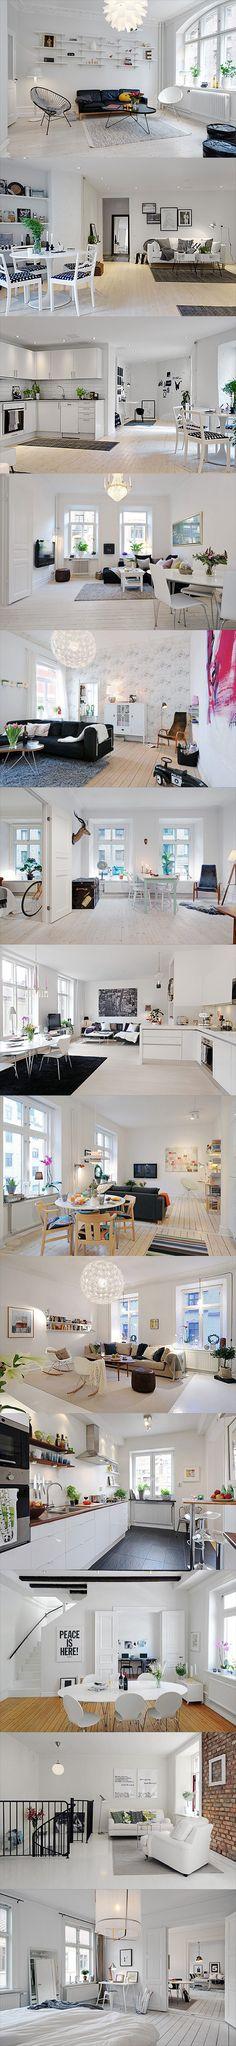 Beautiful & Stylish Scandinavian interior design inspiration 01